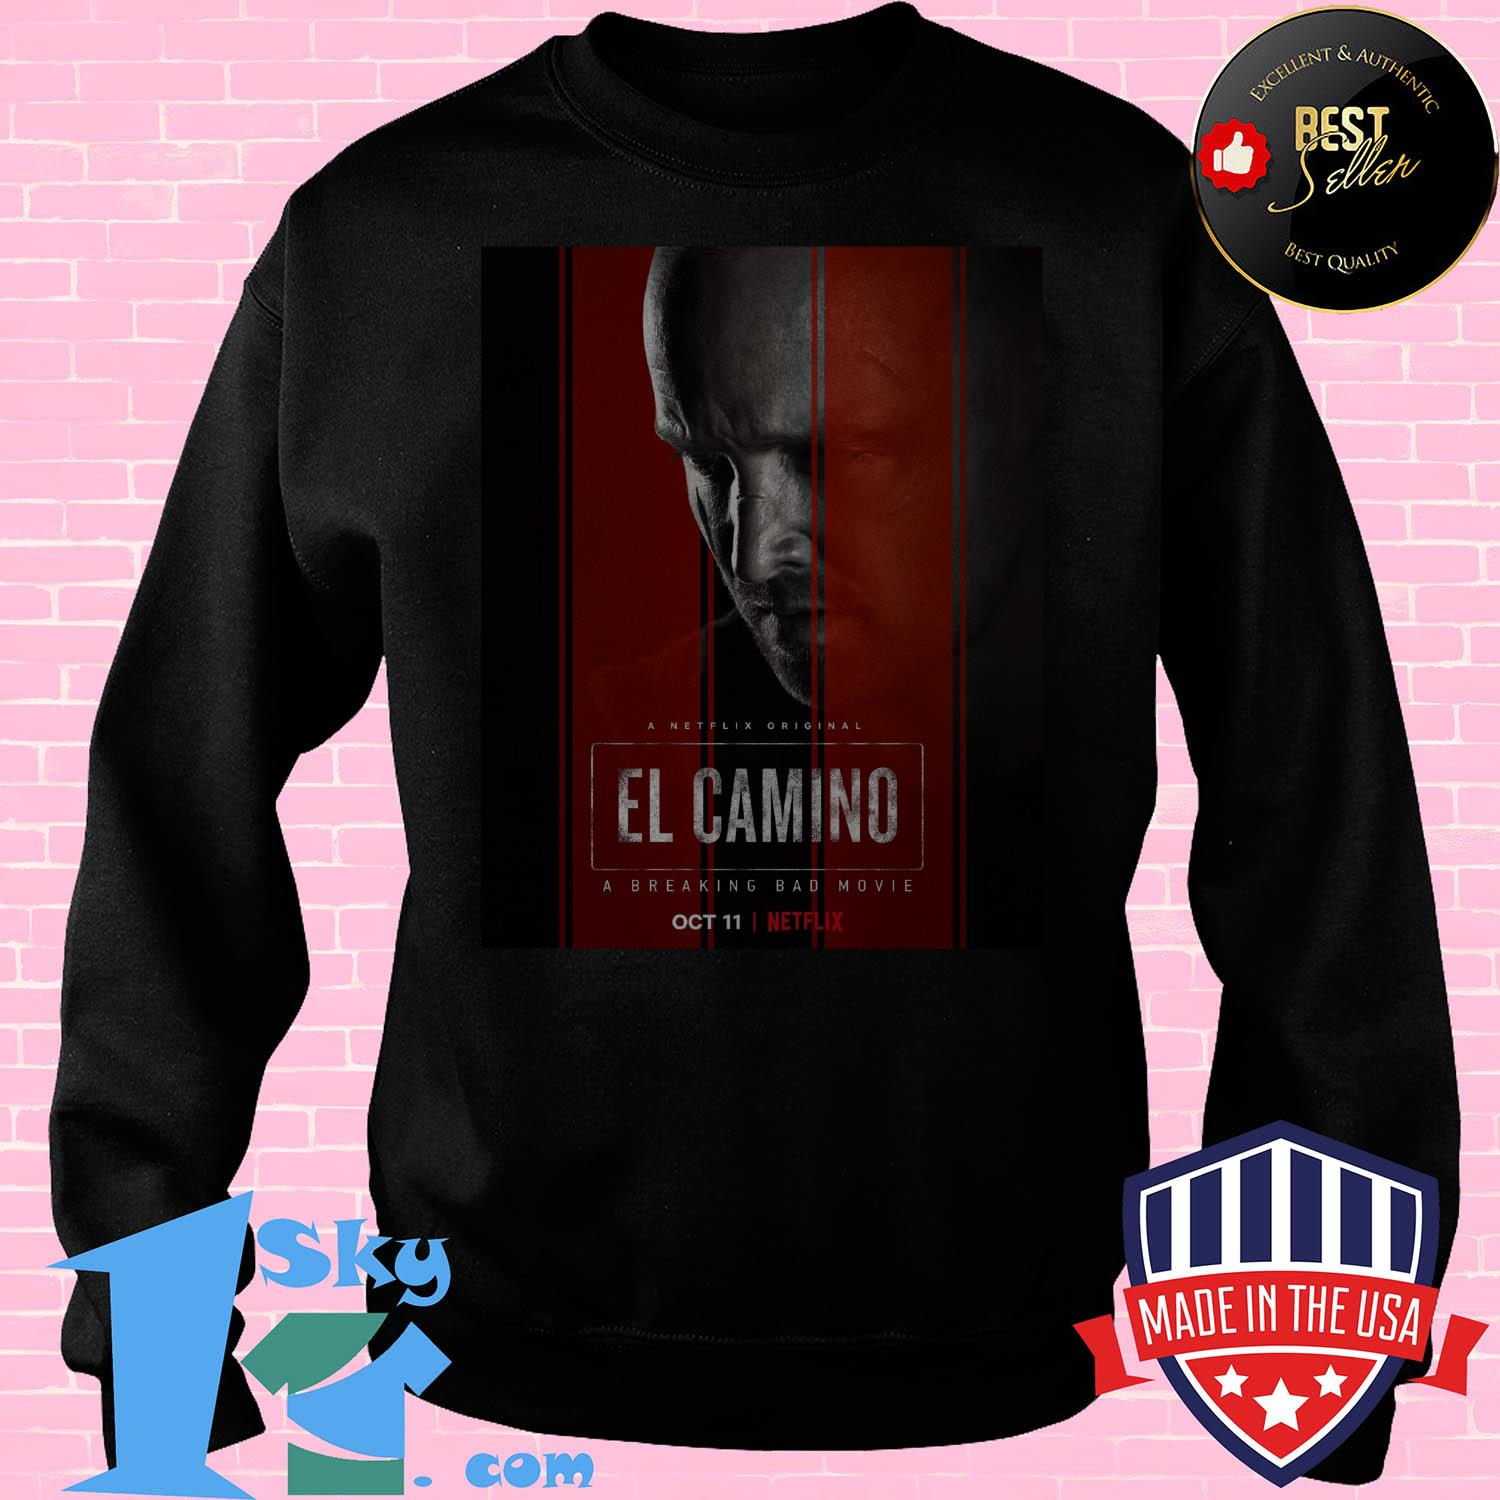 el camino a breaking bad movie 11 october 2019 sweatshirt - EL Camino a Breaking Bad movie 11 October 2019 shirt